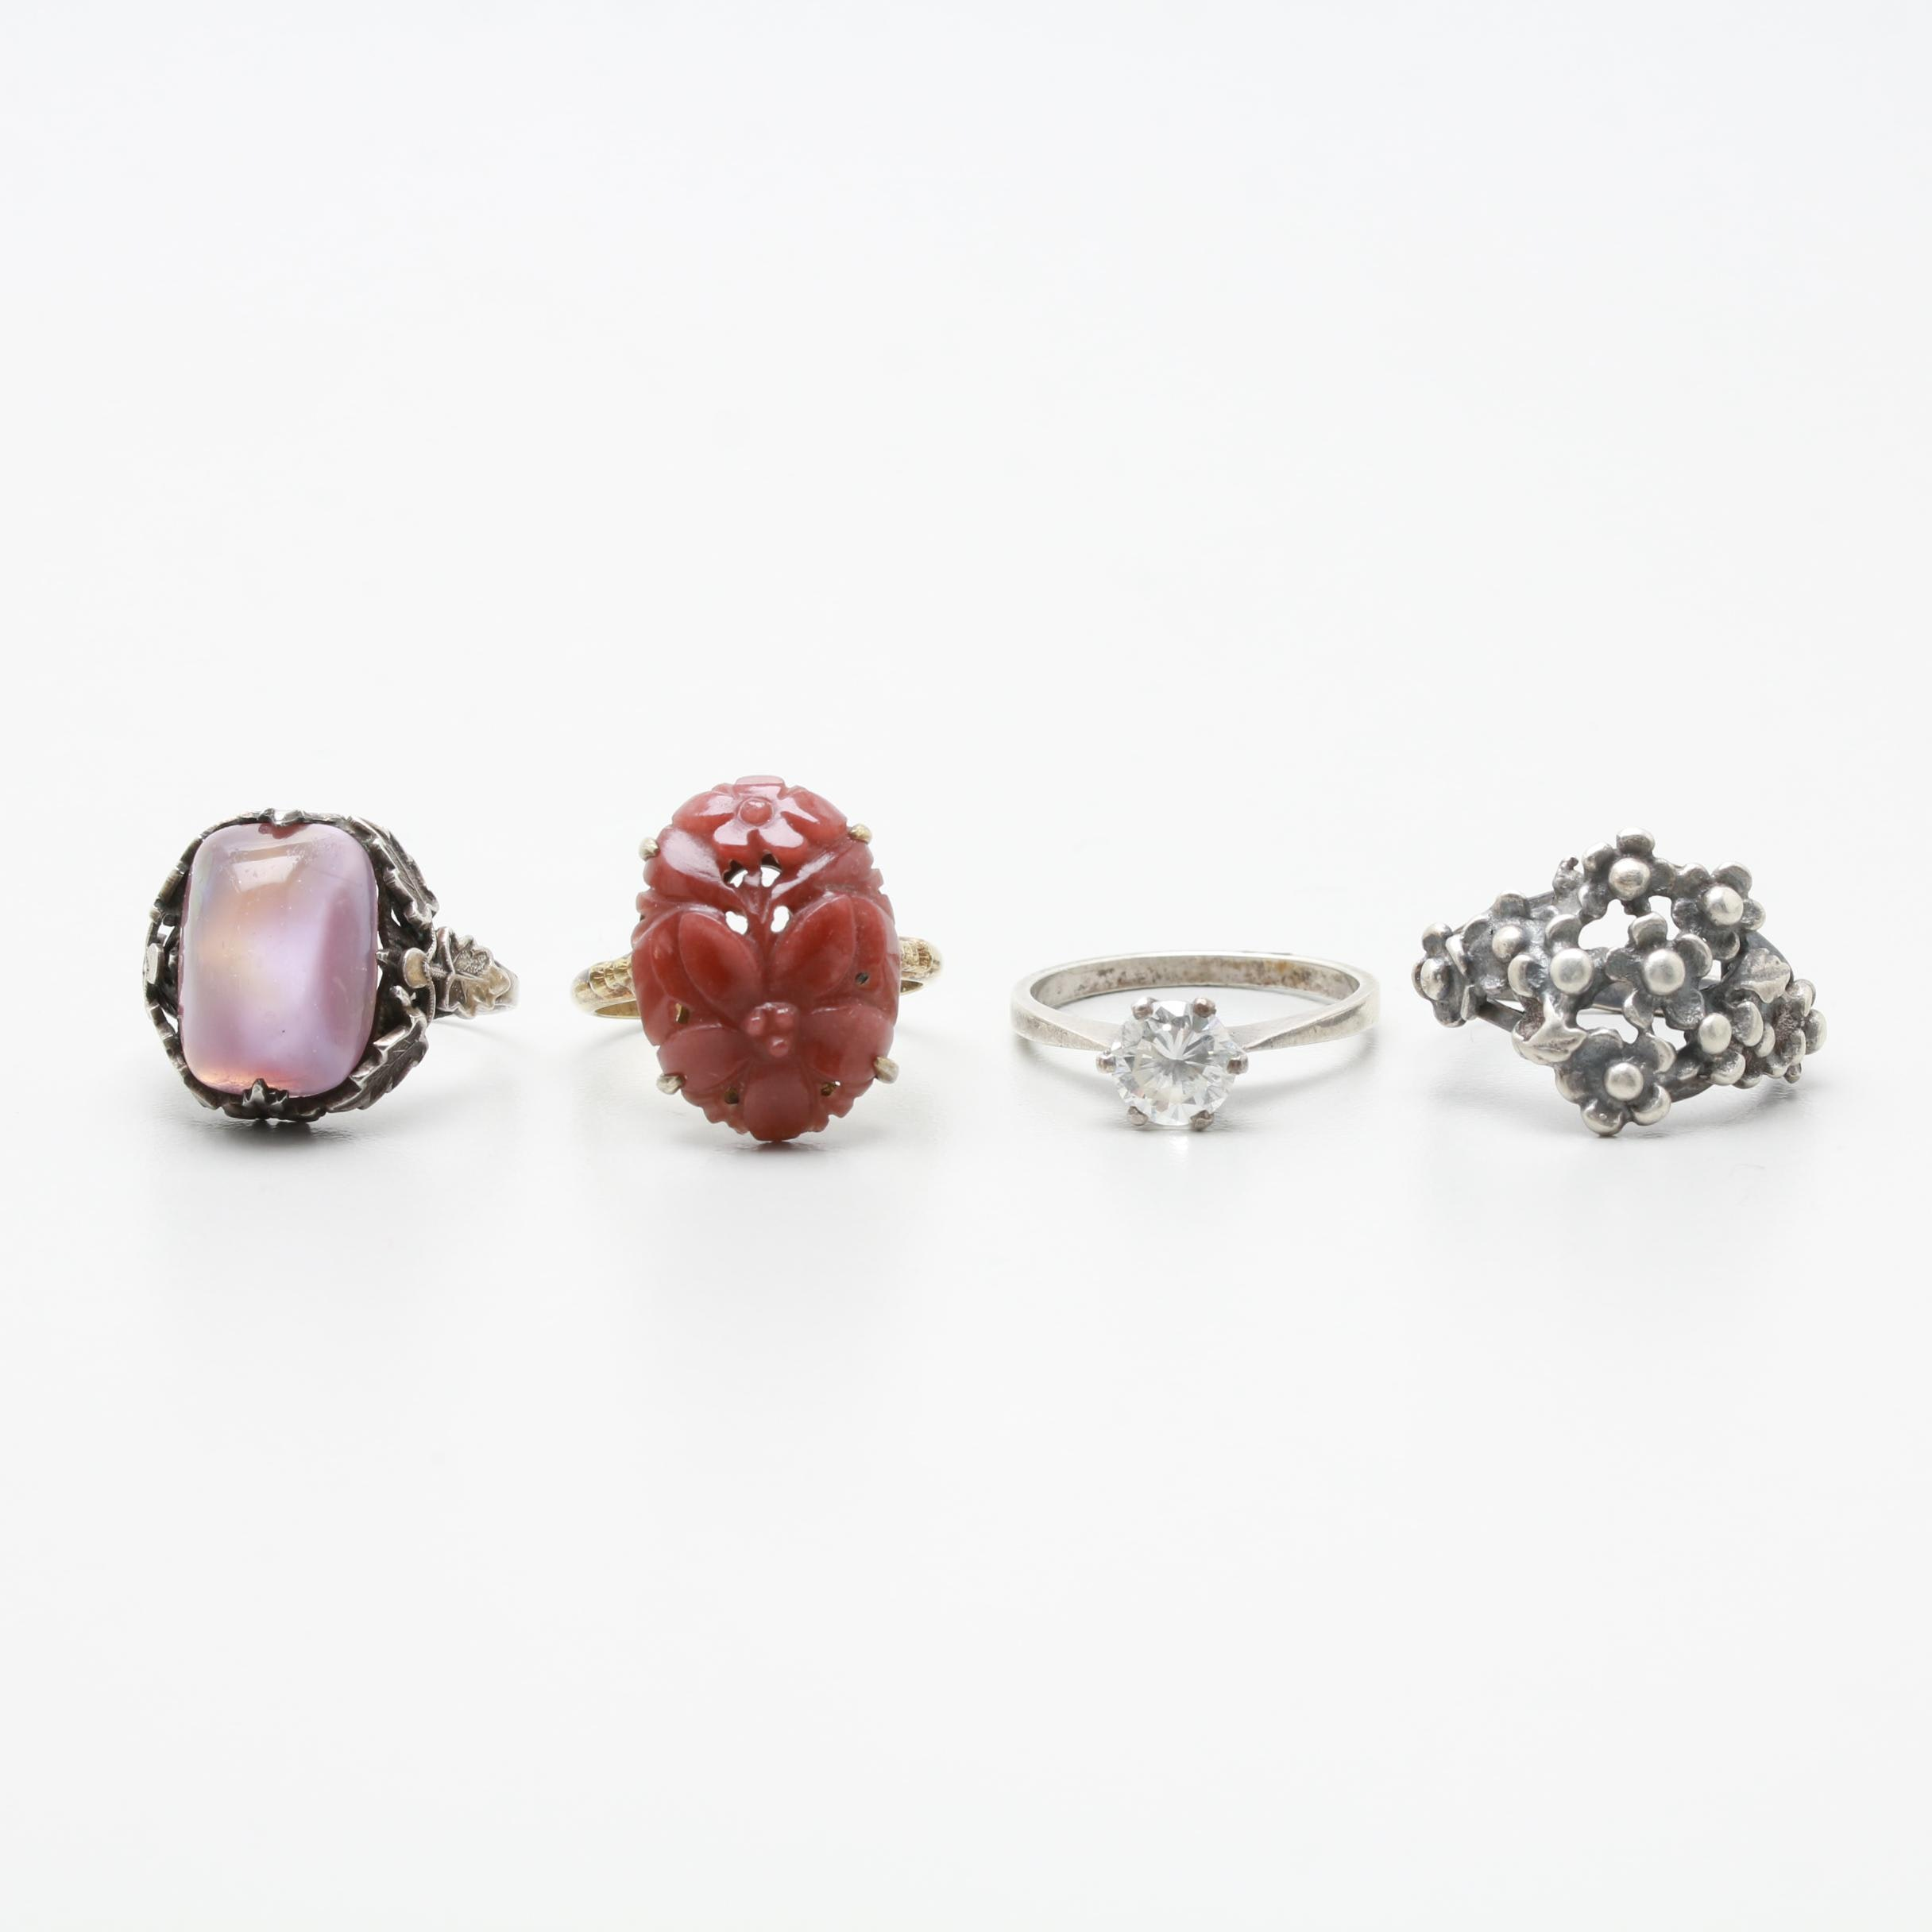 Sterling Silver Quartzite, Cubic Zirconia and Glass Rings